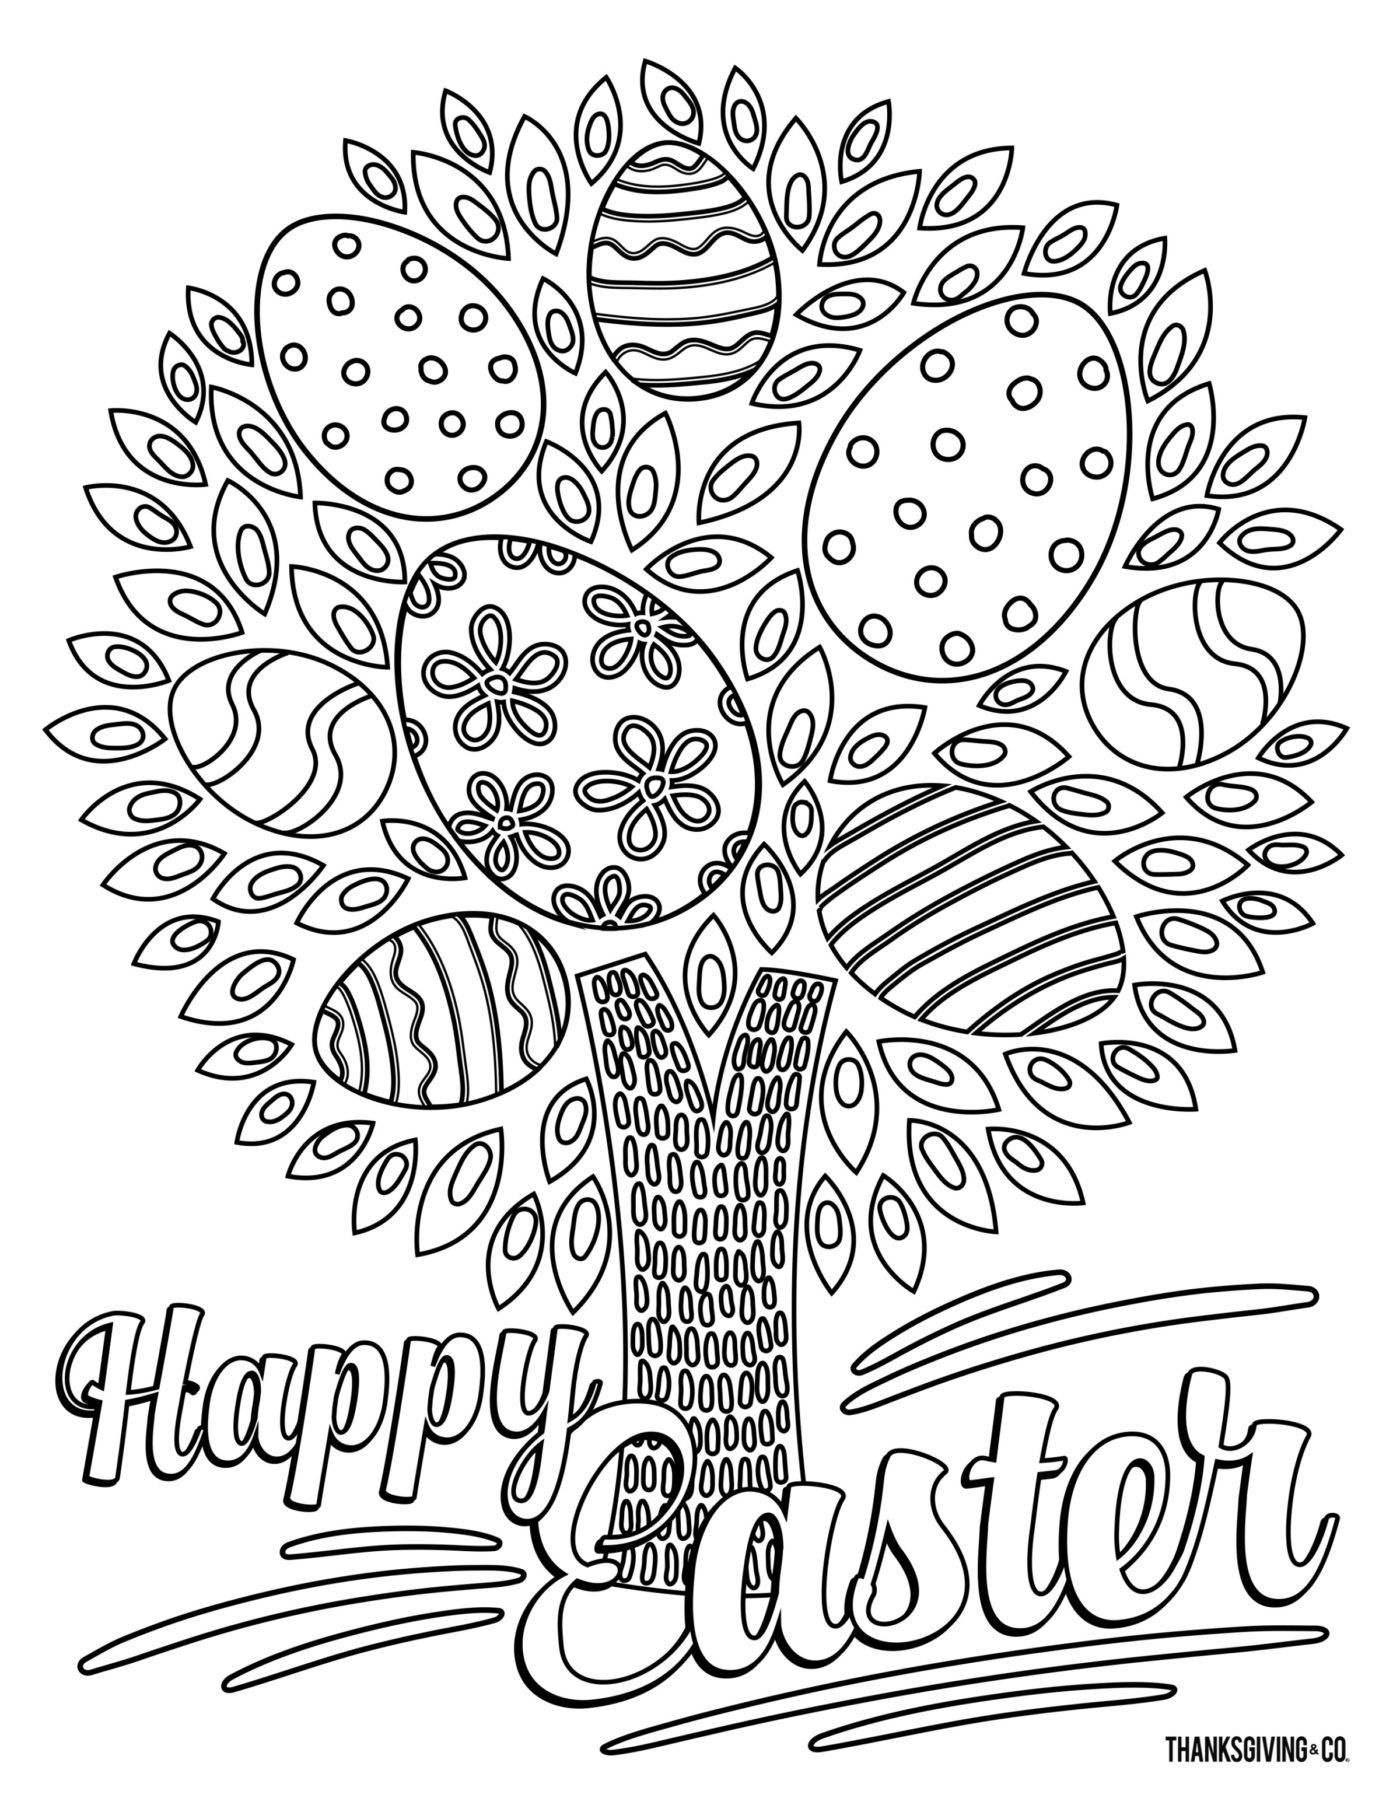 5 Free Printable Easter Coloring Pages That Ll Relieve Stress For Adults From Make Easter Coloring Pages Easter Coloring Pages Printable Easter Printables Free [ 1812 x 1400 Pixel ]